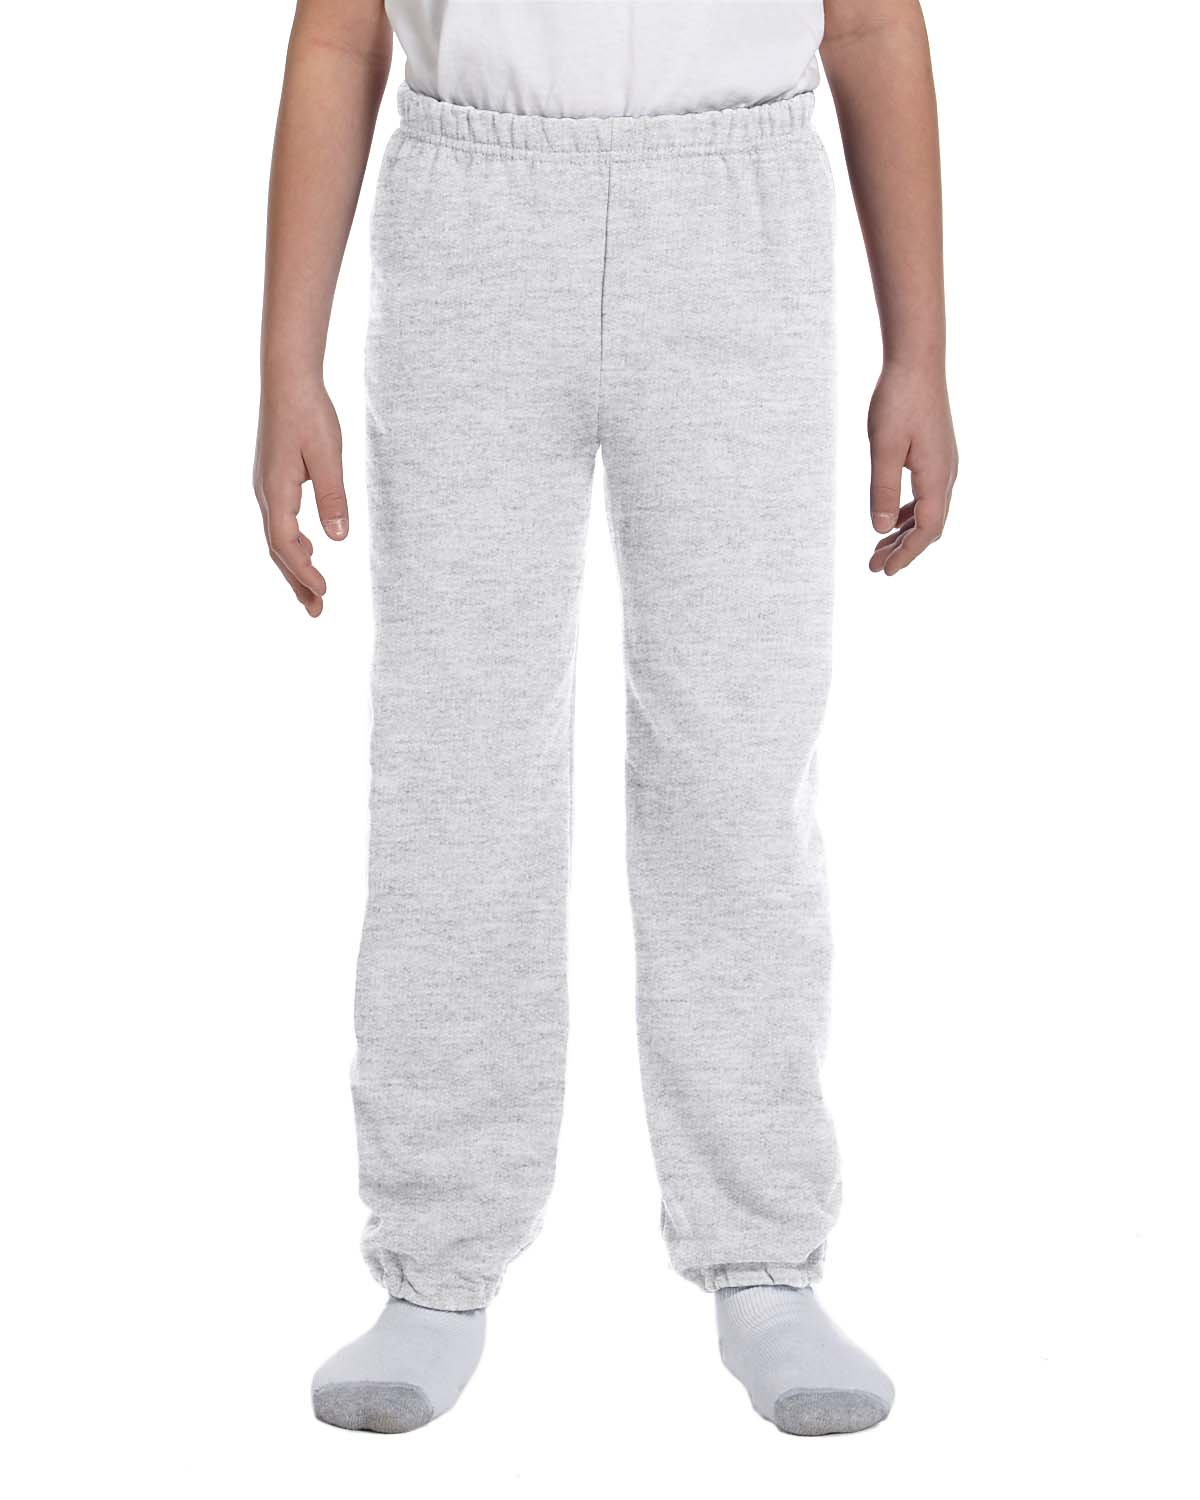 Gildan Boys 7.75 oz. Heavy Blend? 50/50 Sweatpants (G182B) -ASH -L-12PK